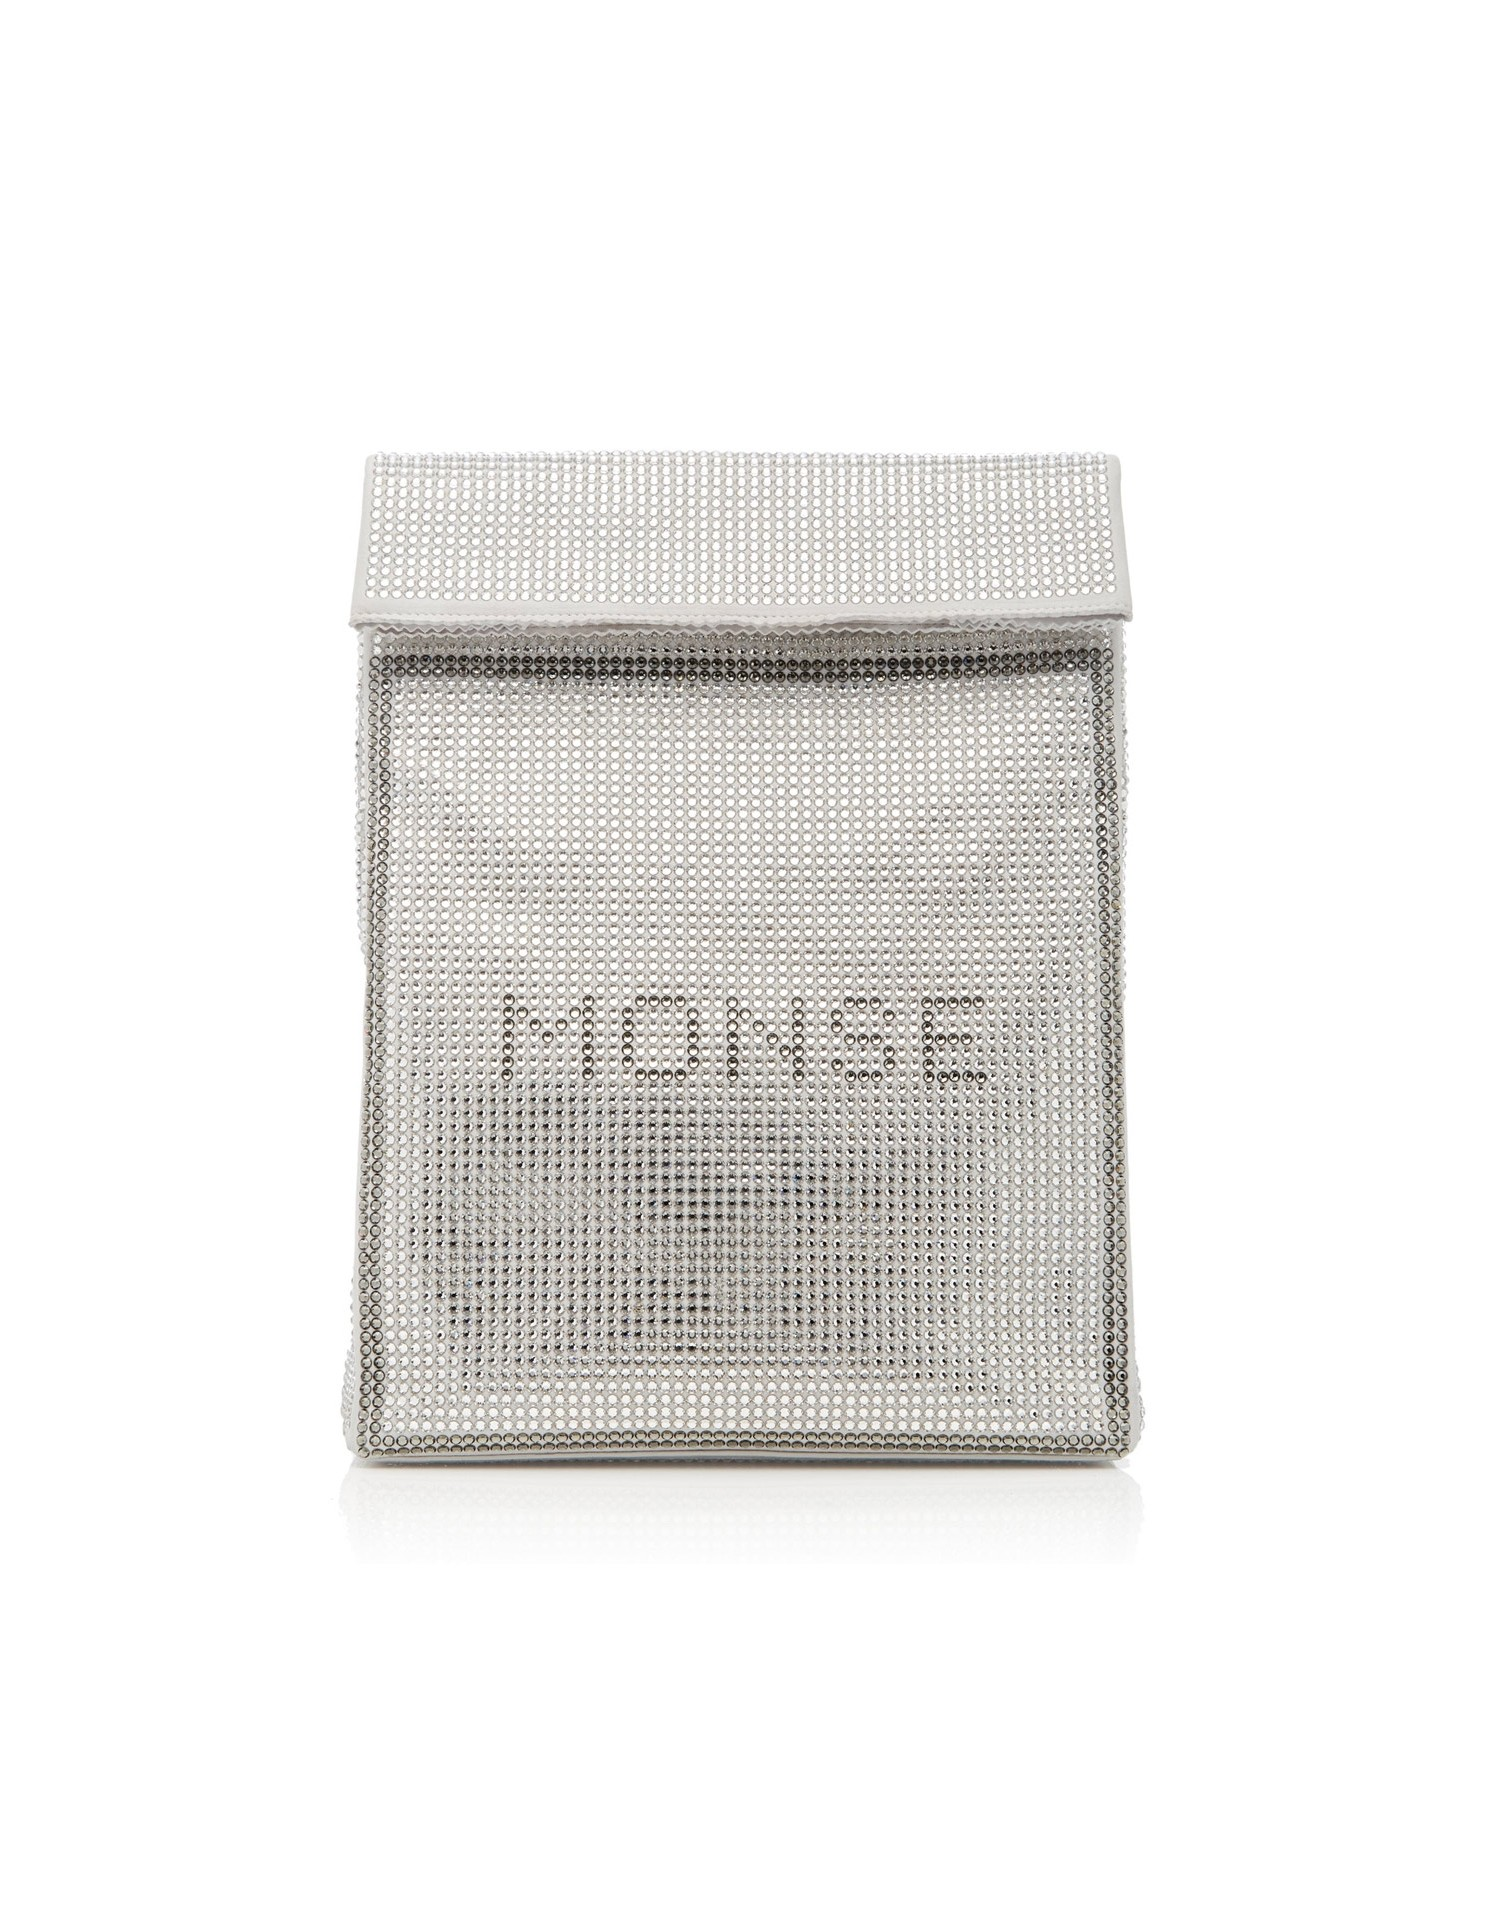 MONSE Crystal Bag